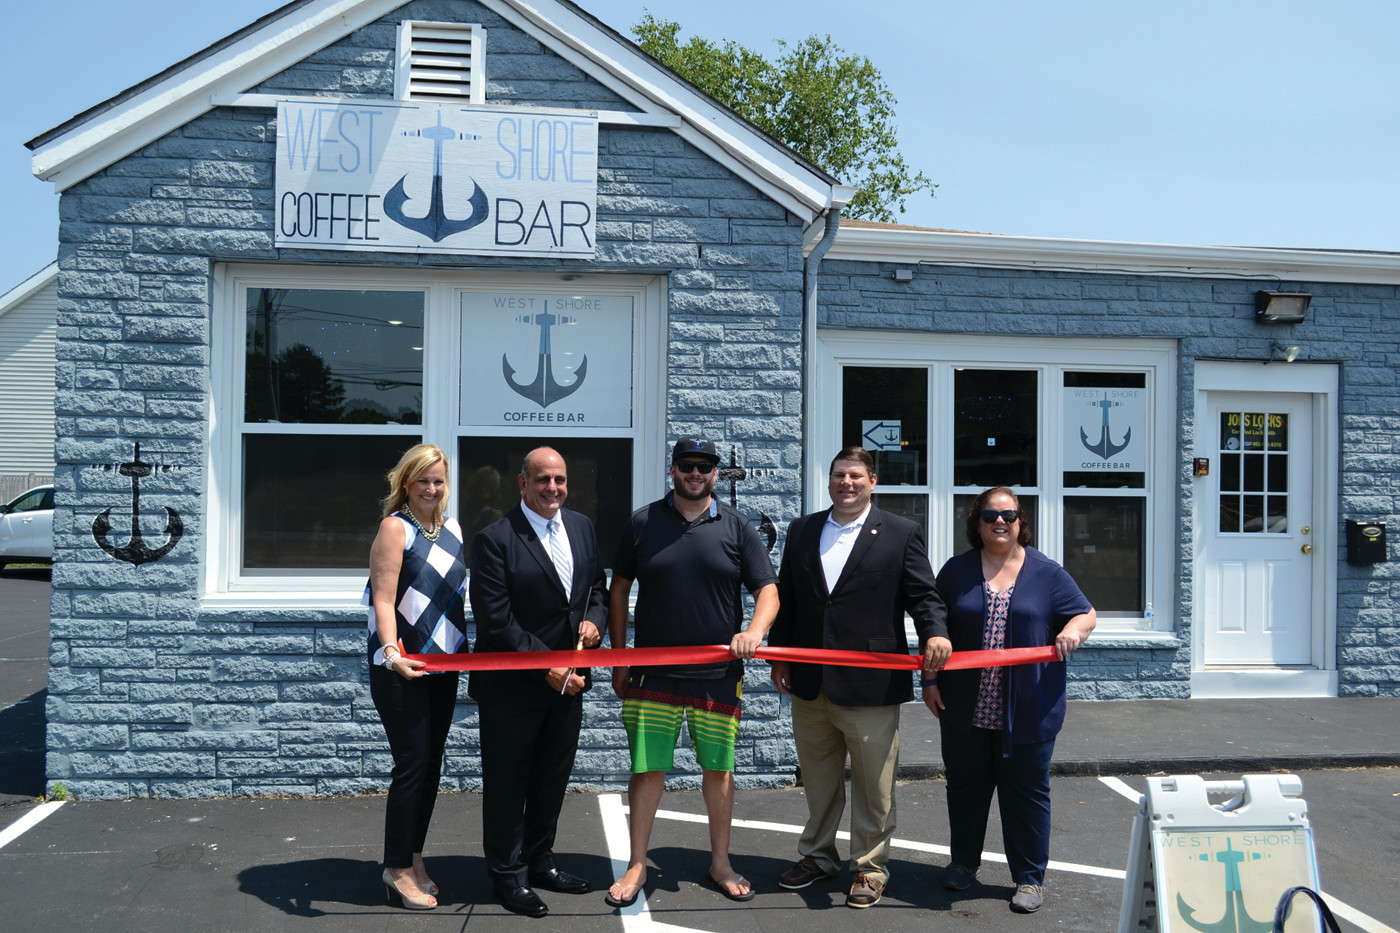 Jedson, Solomon, Dan Saffer, McAllister and Vella-Wilkinson cut the ribbon for West Shore Coffee Bar.